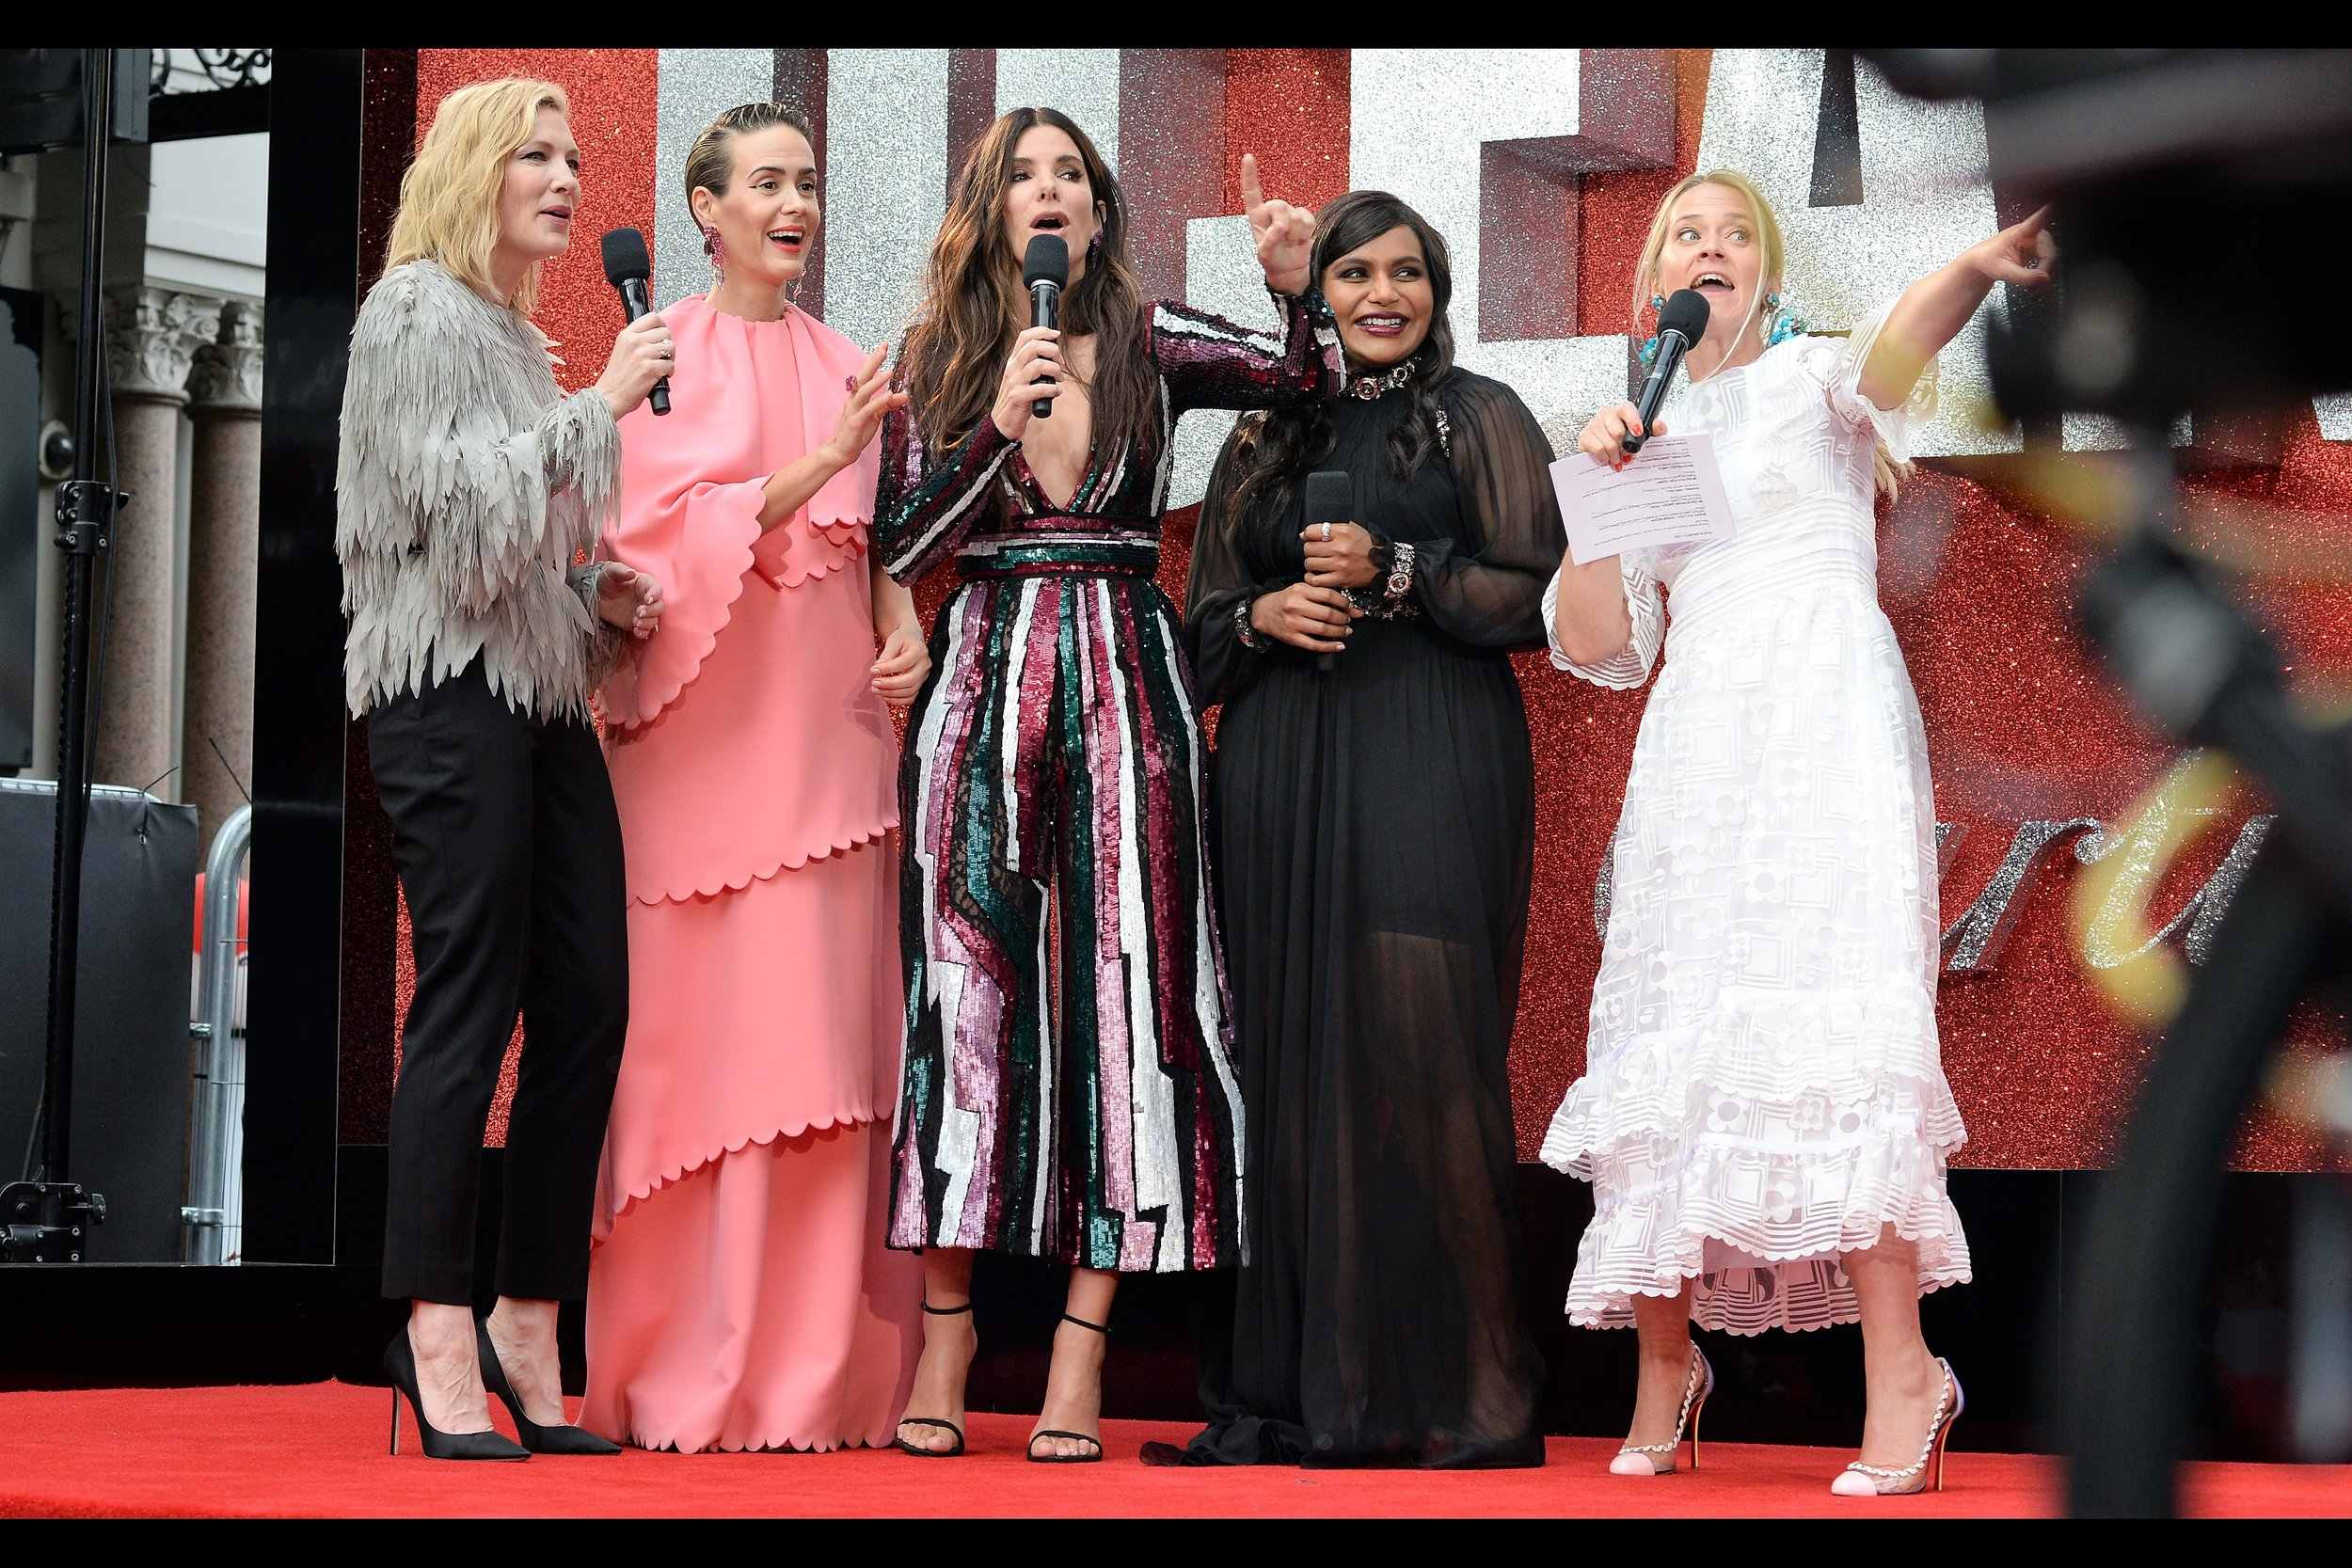 """""""Having eight women (and no men) in the Oceans team wasn't deliberate, you know. It was just a 1 in 256 coincidence. And what's the likelihood that the extra person in Oceans 9 will be a Man, I hear you ask? Umm... about 1 in 512, I think...""""  (But yes, I am aware that the maths for Oceans 12 is pretty heavily outside the 'coincidental' realm by several orders of magnitude)"""